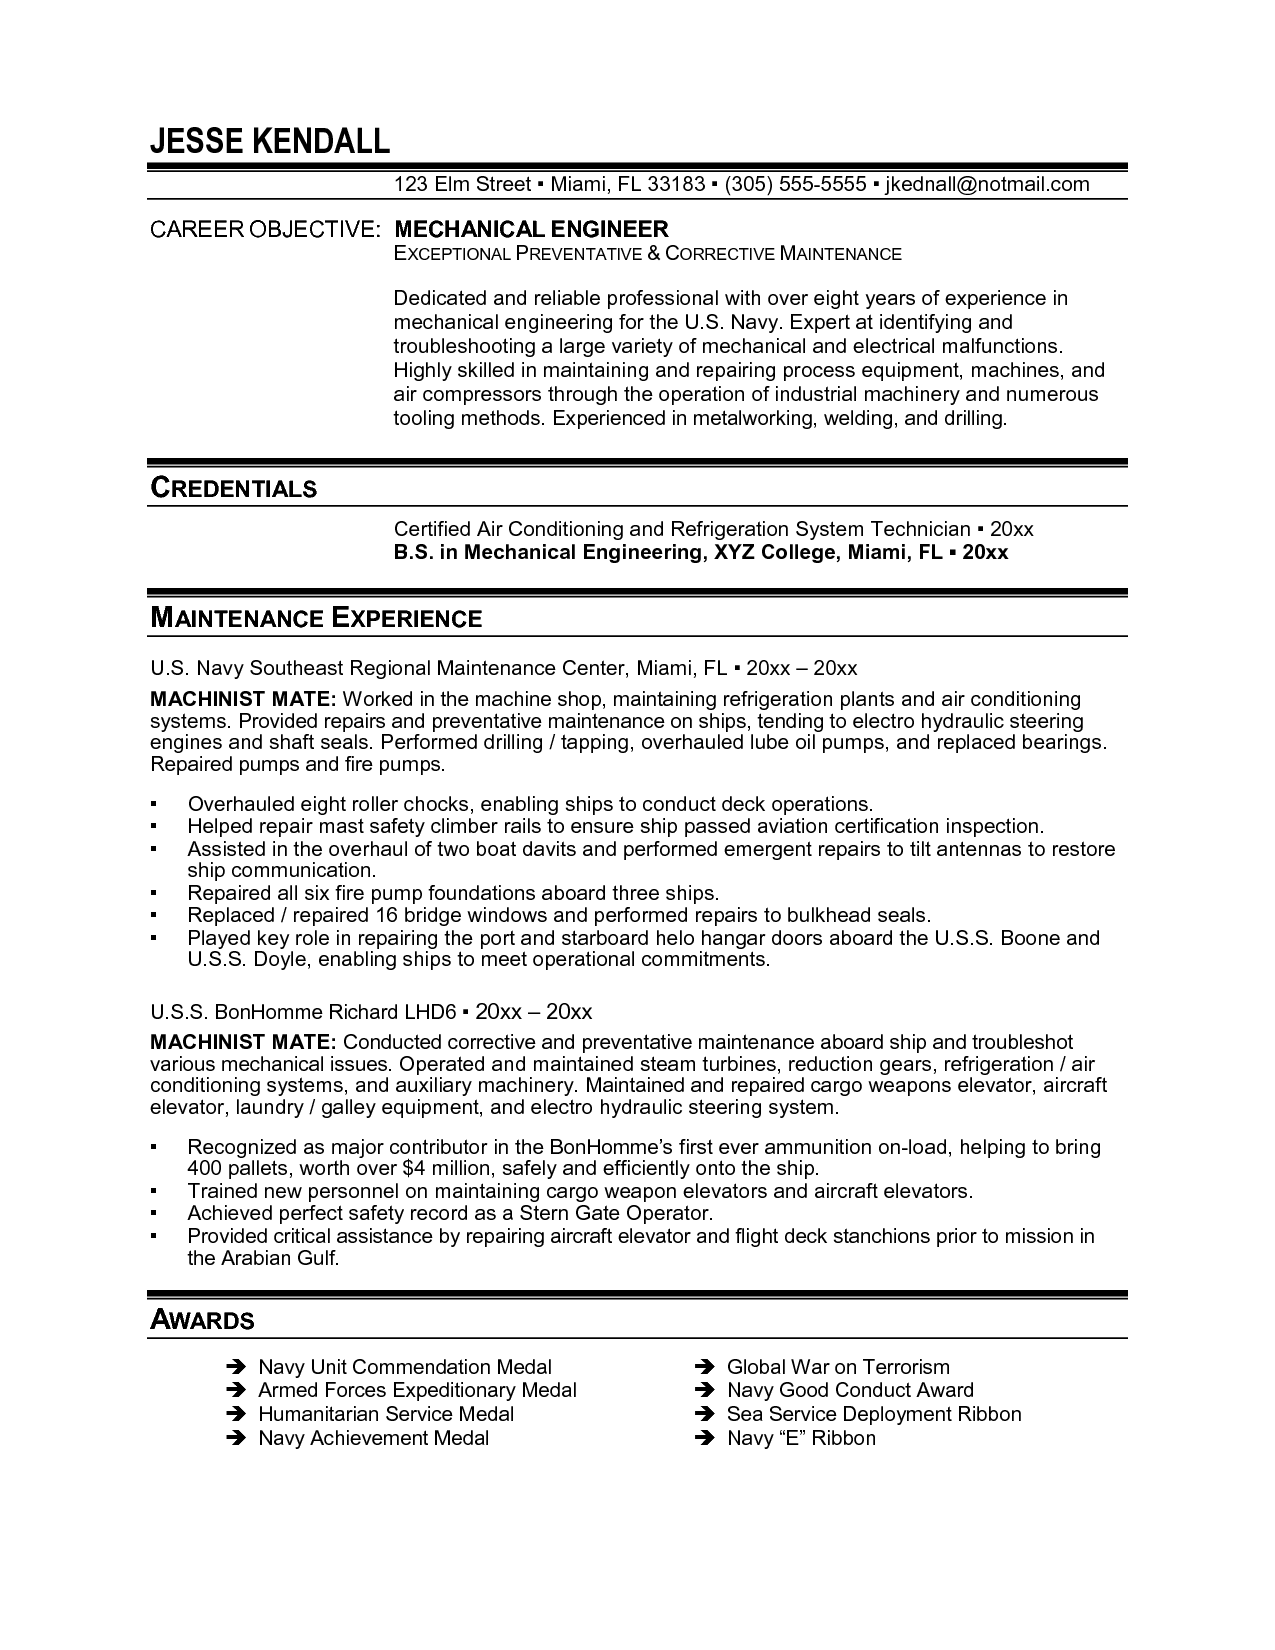 Industrial Engineer Resume New Section Instrumentation And Control Engineer Sample Resume Electronics